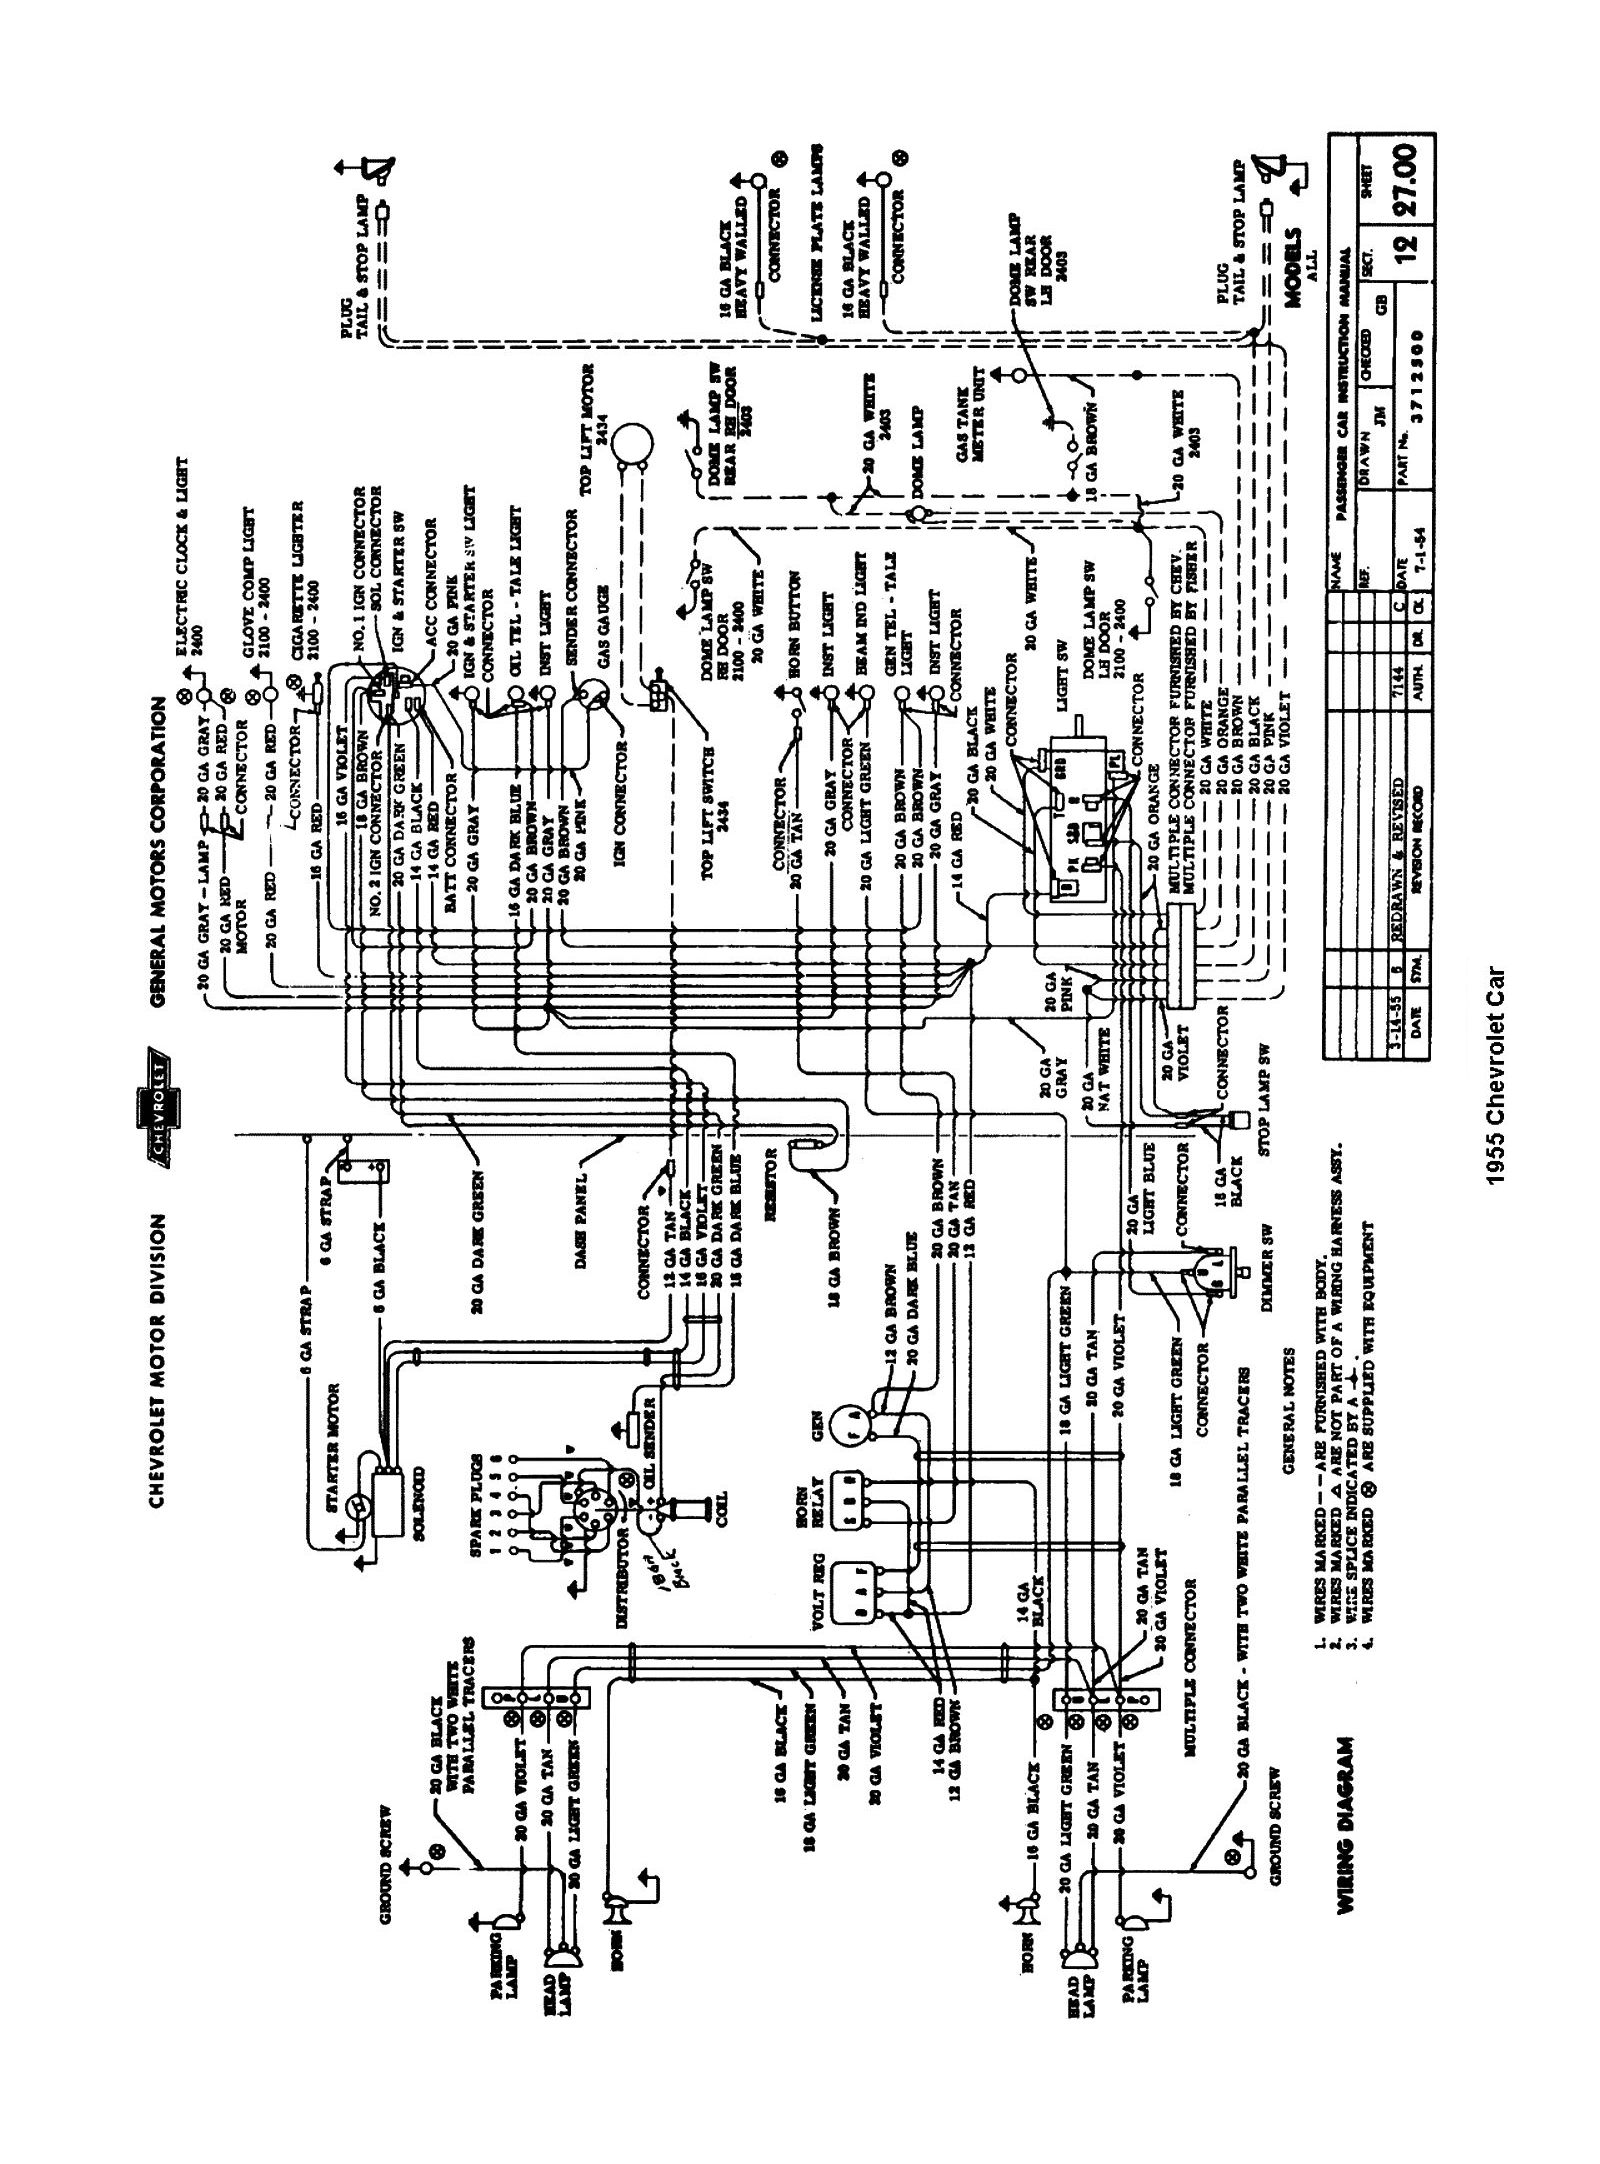 62 gmc wiring diagram free download schematic wiring diagrams chevy wiring diagrams